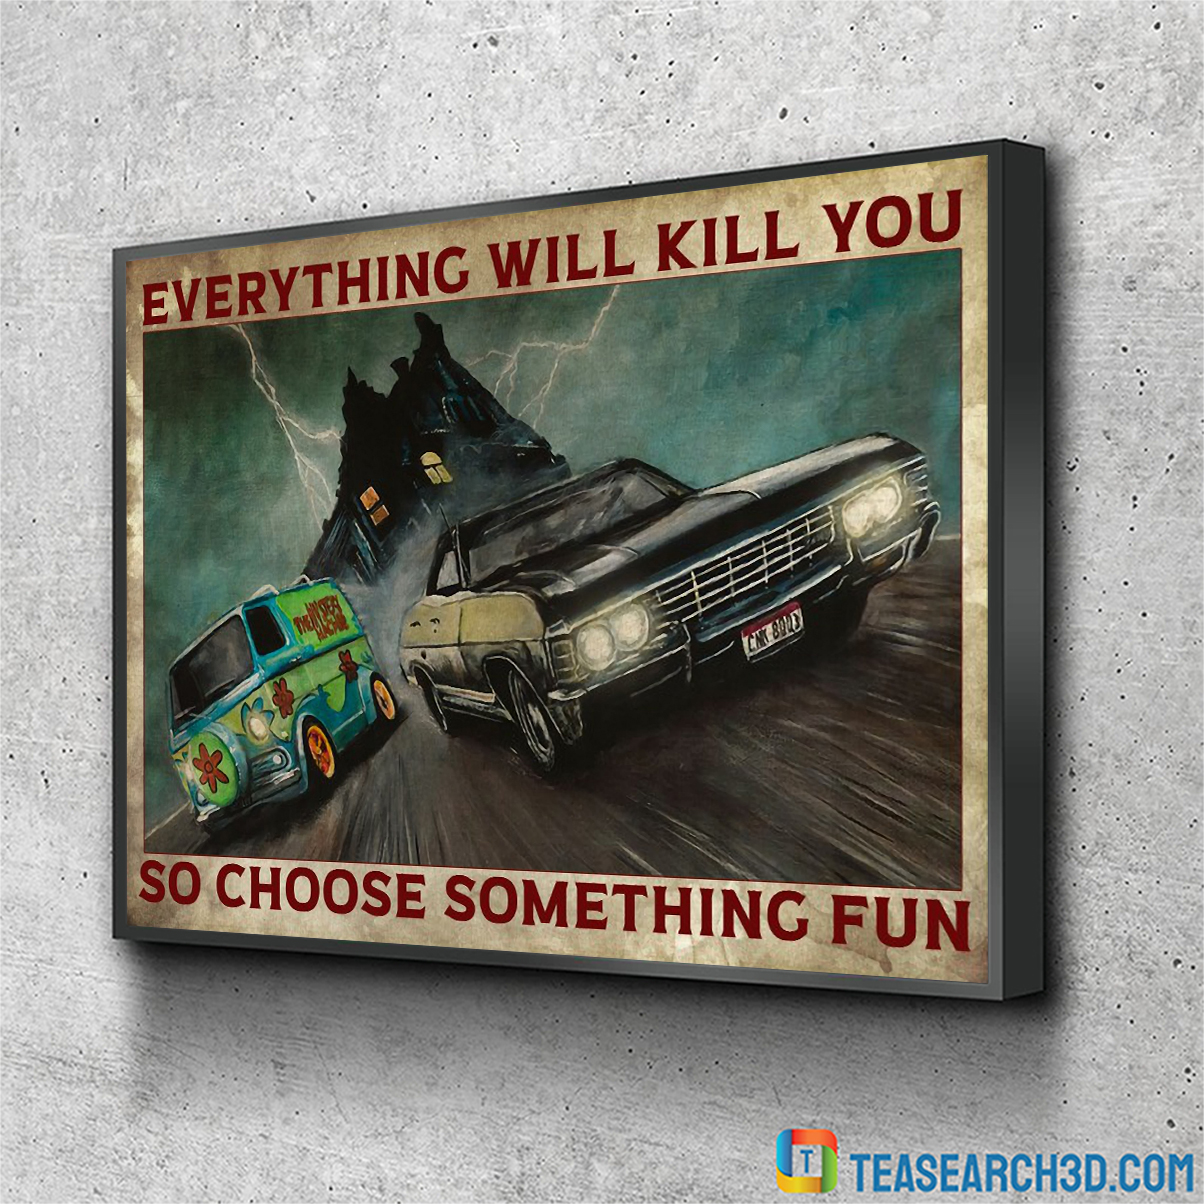 Mystery Machine and supernatural impala in drag race everything will kill you poster